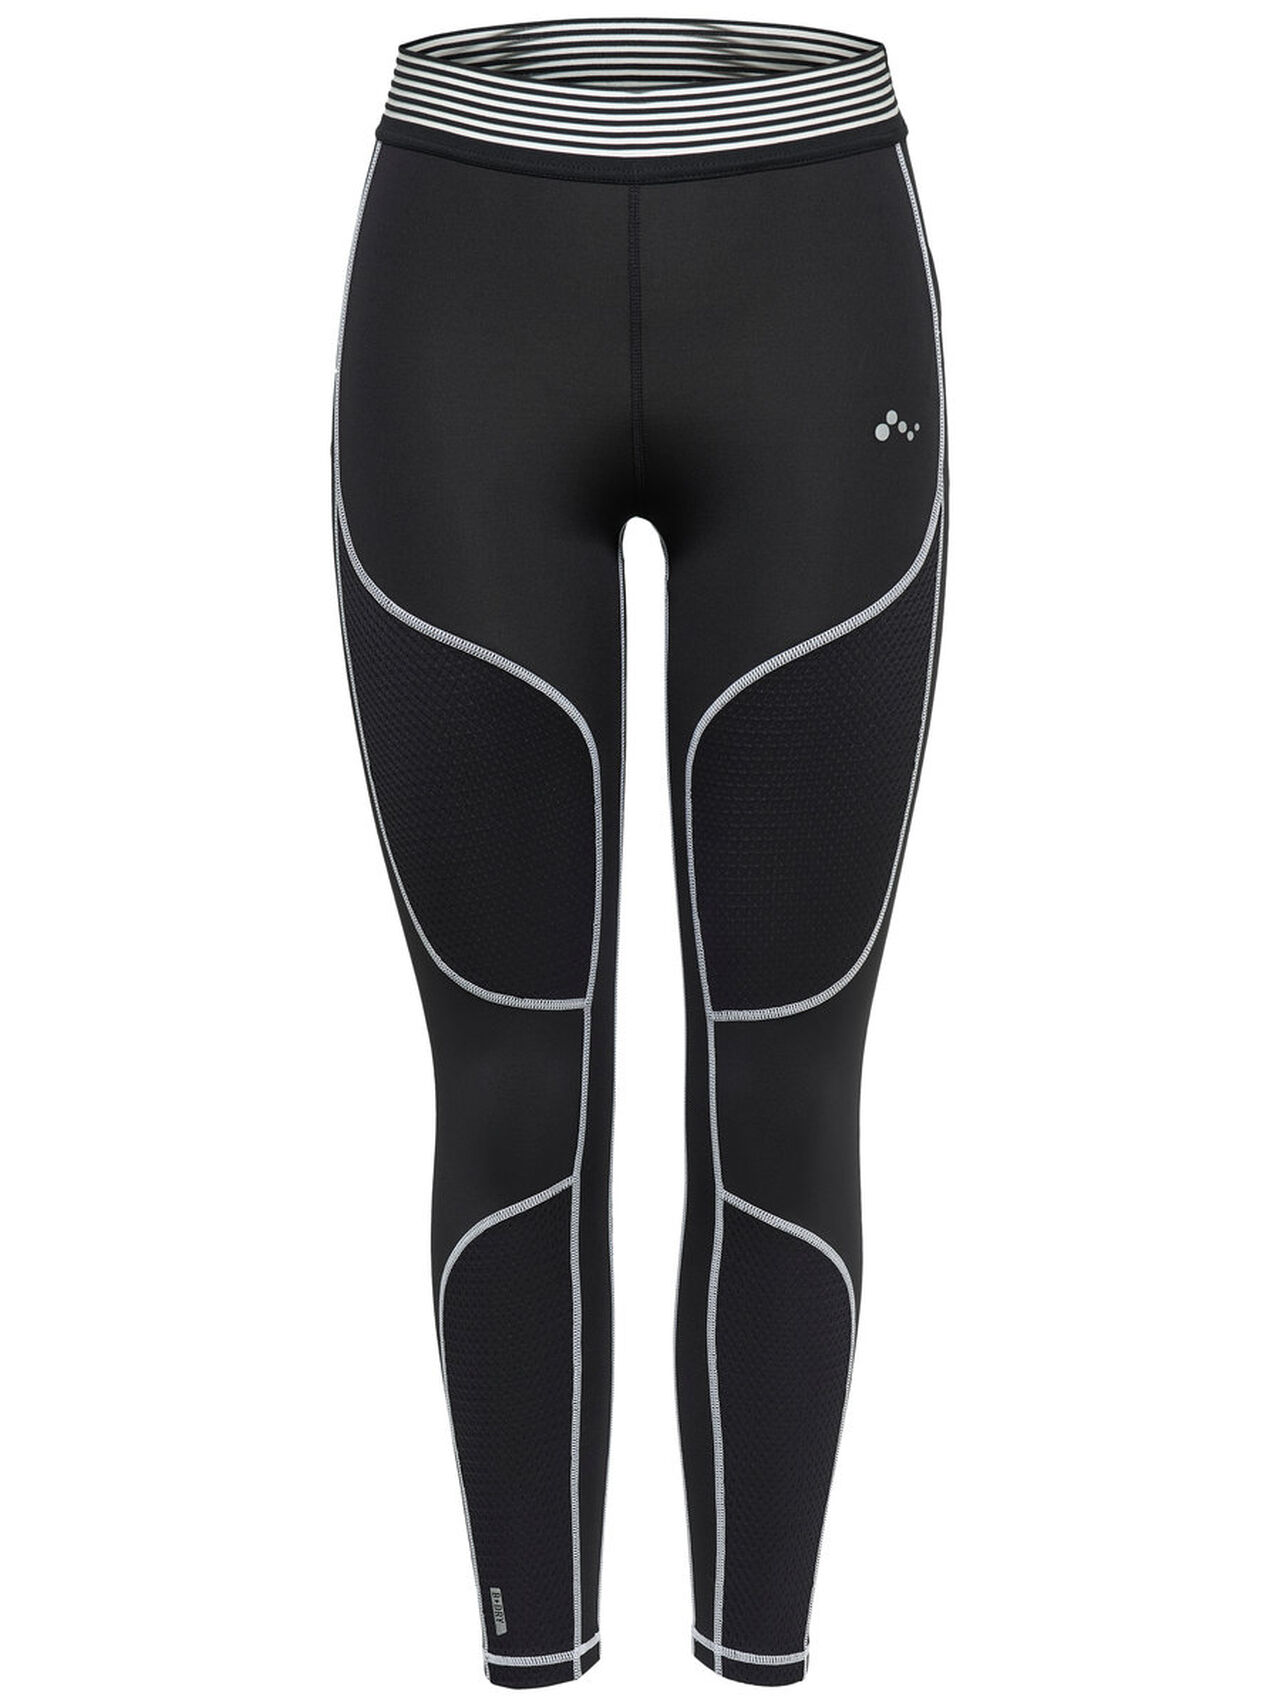 ONLY Contrast Training Tights Women Black